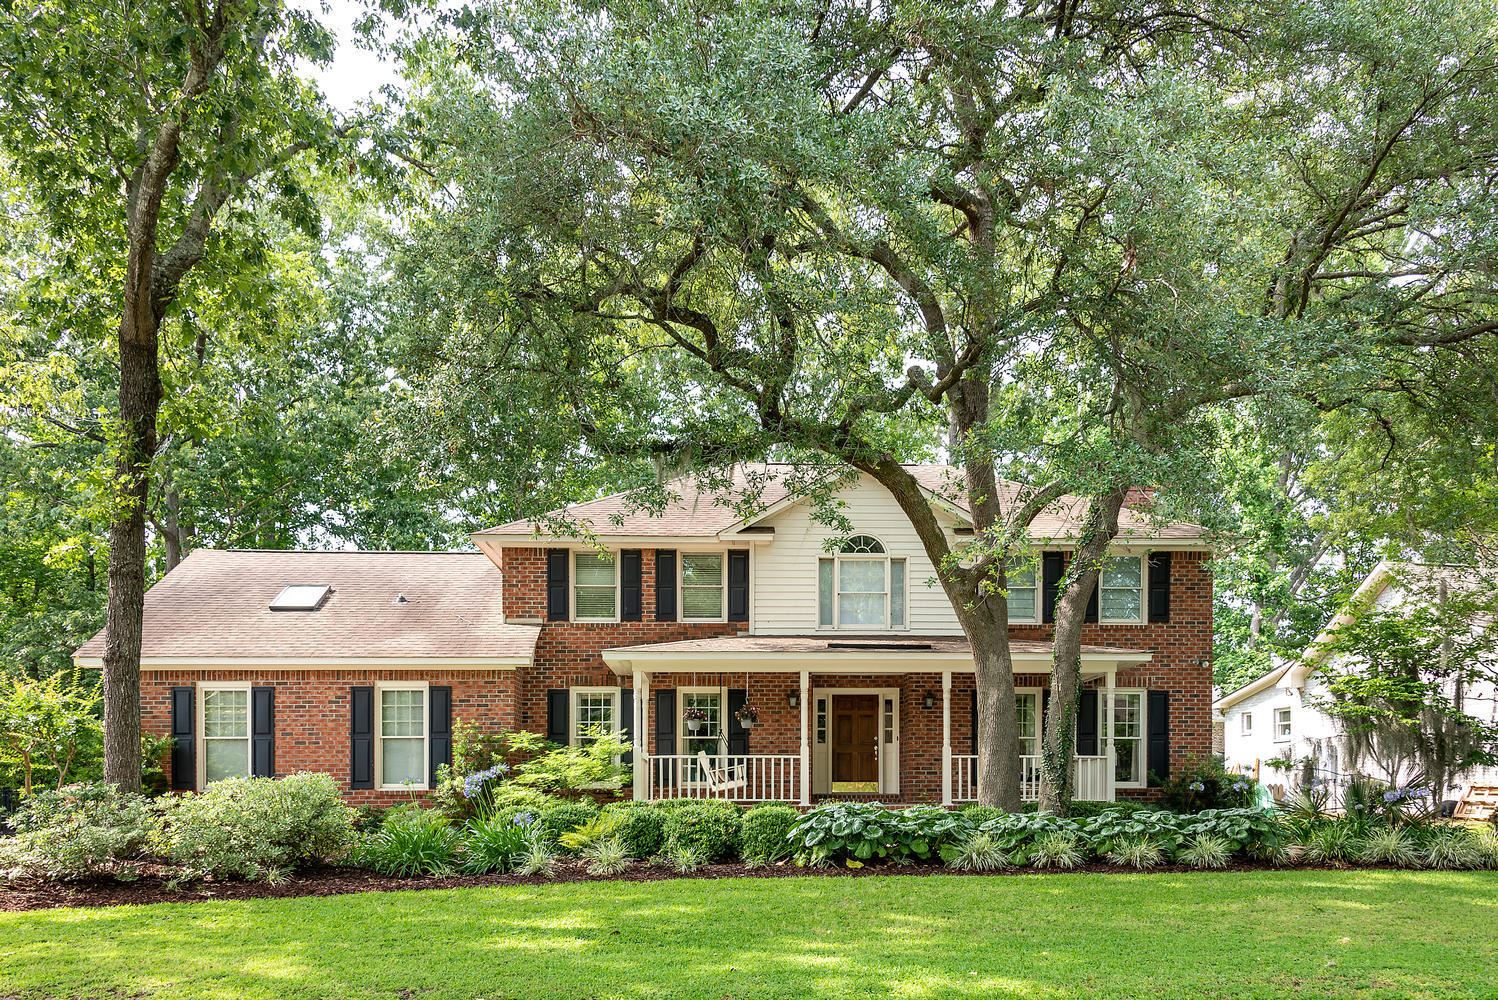 Photo of 1685 Southport Drive, Charleston, SC 29407 (MLS # 20014105)